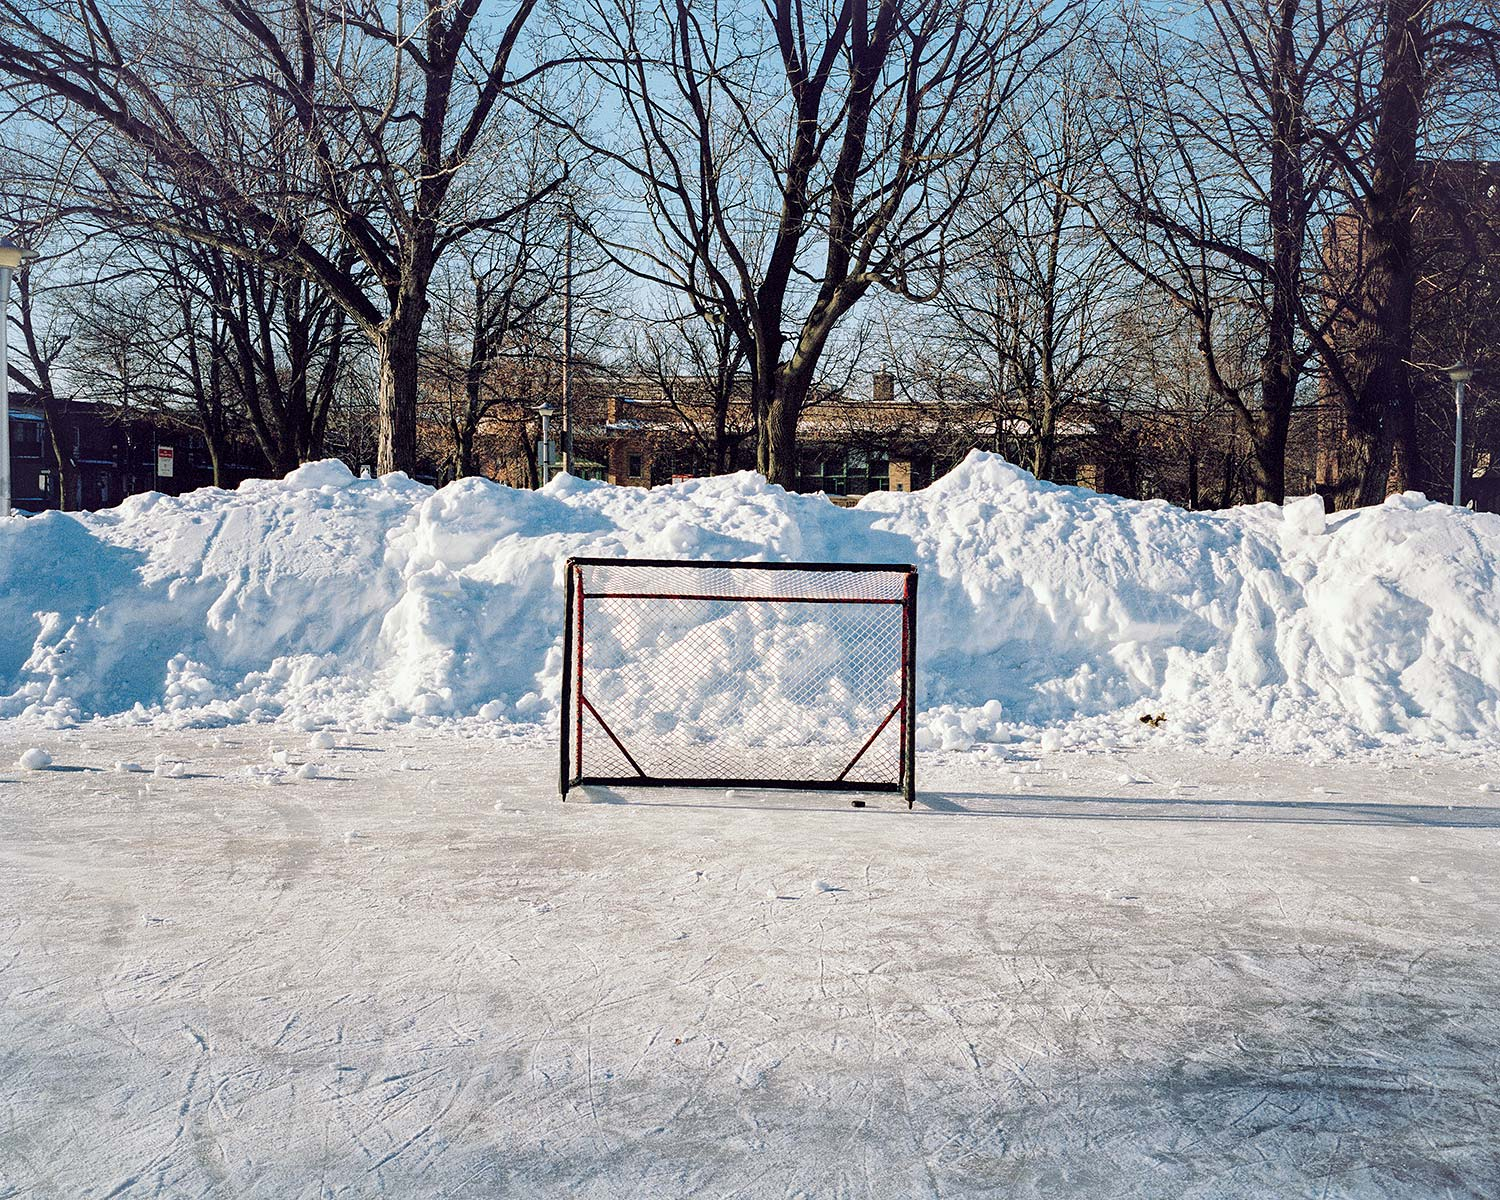 Shinny, Net and Puck, Notre-dame-de-Grâce, Montreal, Brant Slomovic Documentary Photography